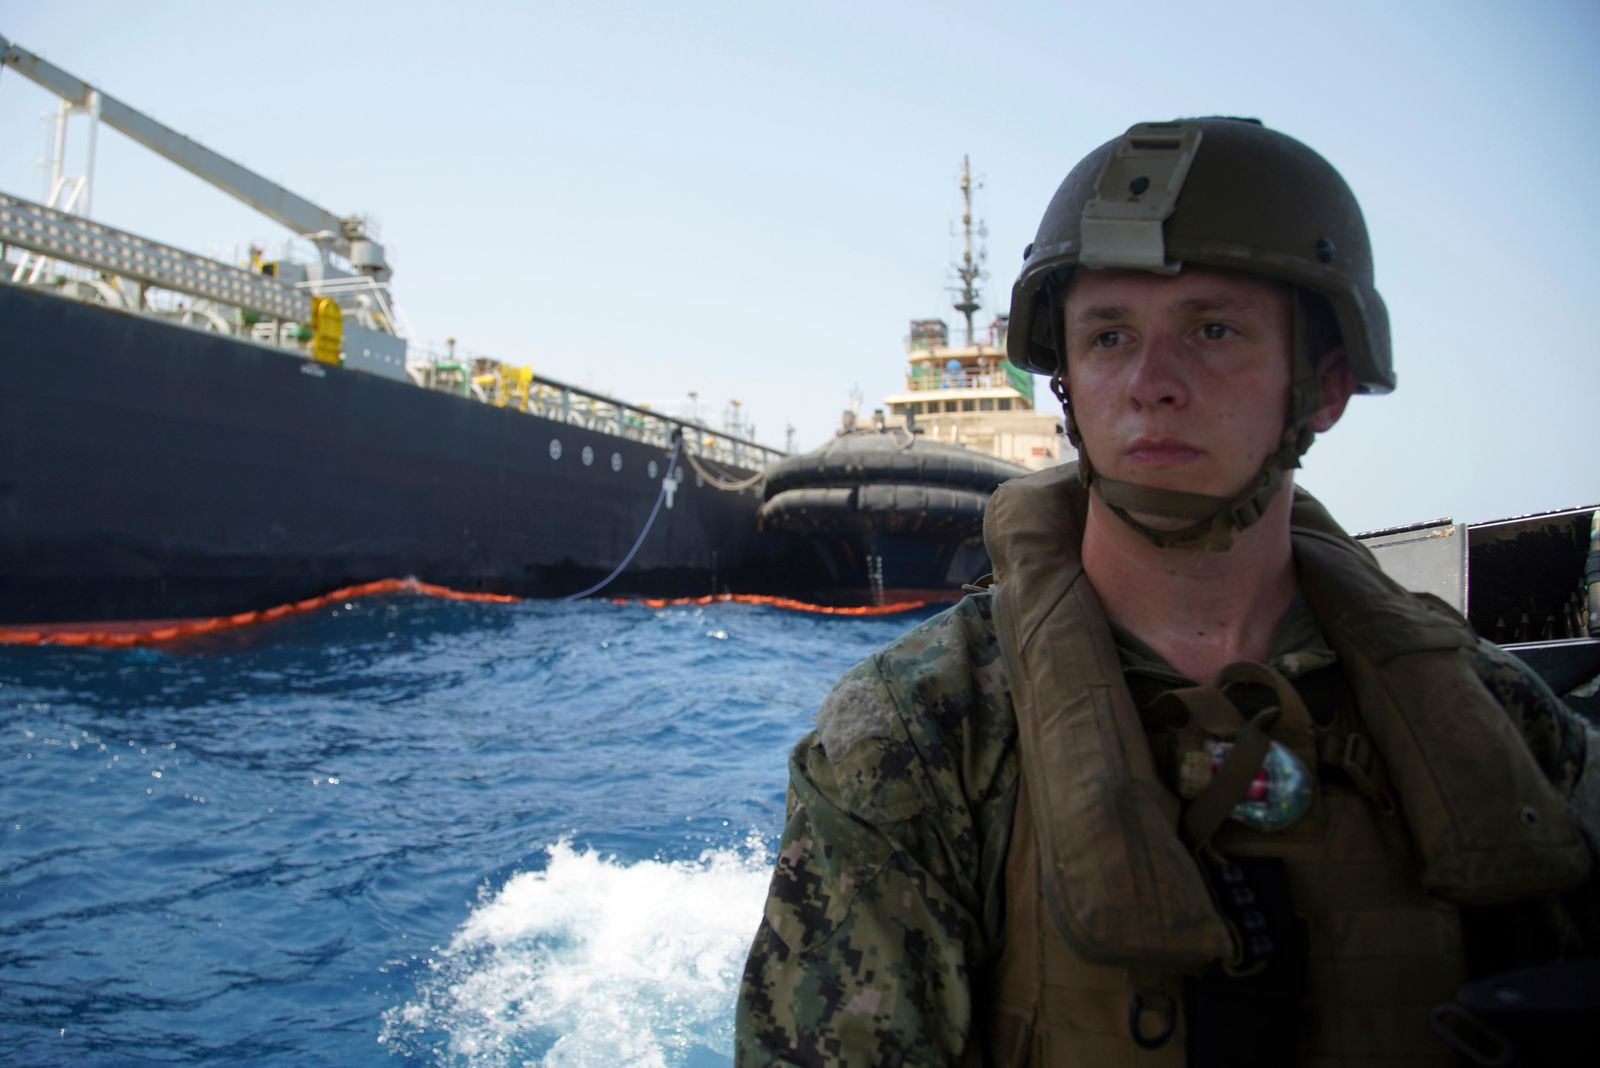 The damaged Panama-flagged, Japanese owned oil tanker Kokuka Courageous, that the U.S. Navy says was damaged by a limpet mine, is seen behind a U.S. sailor, during a trip organized by the Navy for journalists, off Fujairah, United Arab Emirates, Wednesday, June 19, 2019.{ } (AP Photo/Fay Abuelgasim)